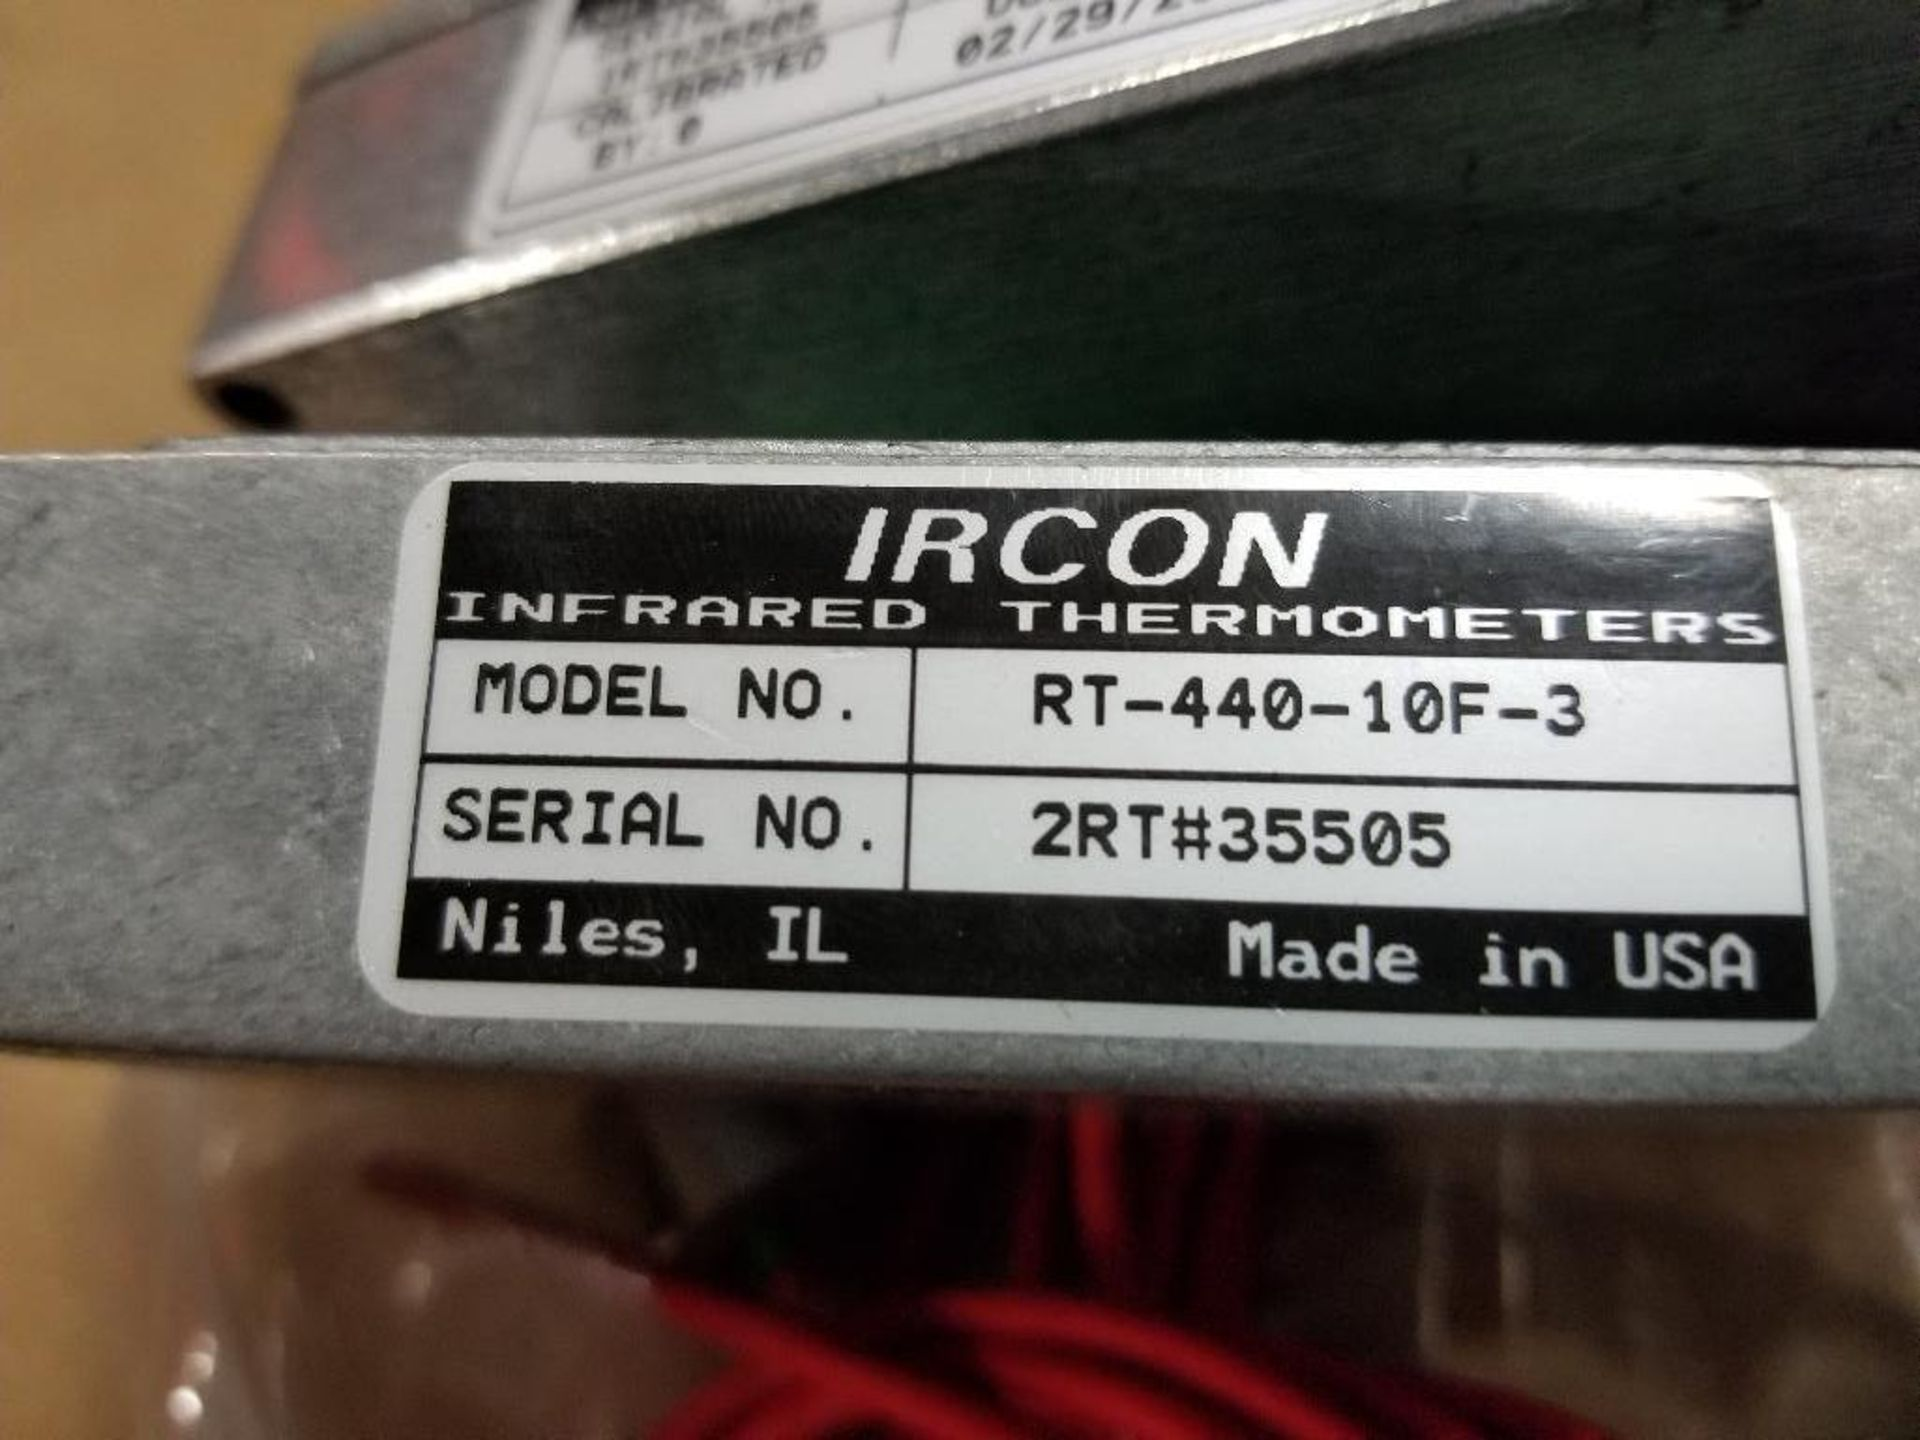 Qty 2 - IRCON minIRT miniature infrared thermometer. RT-440-10F-3. - Image 4 of 4